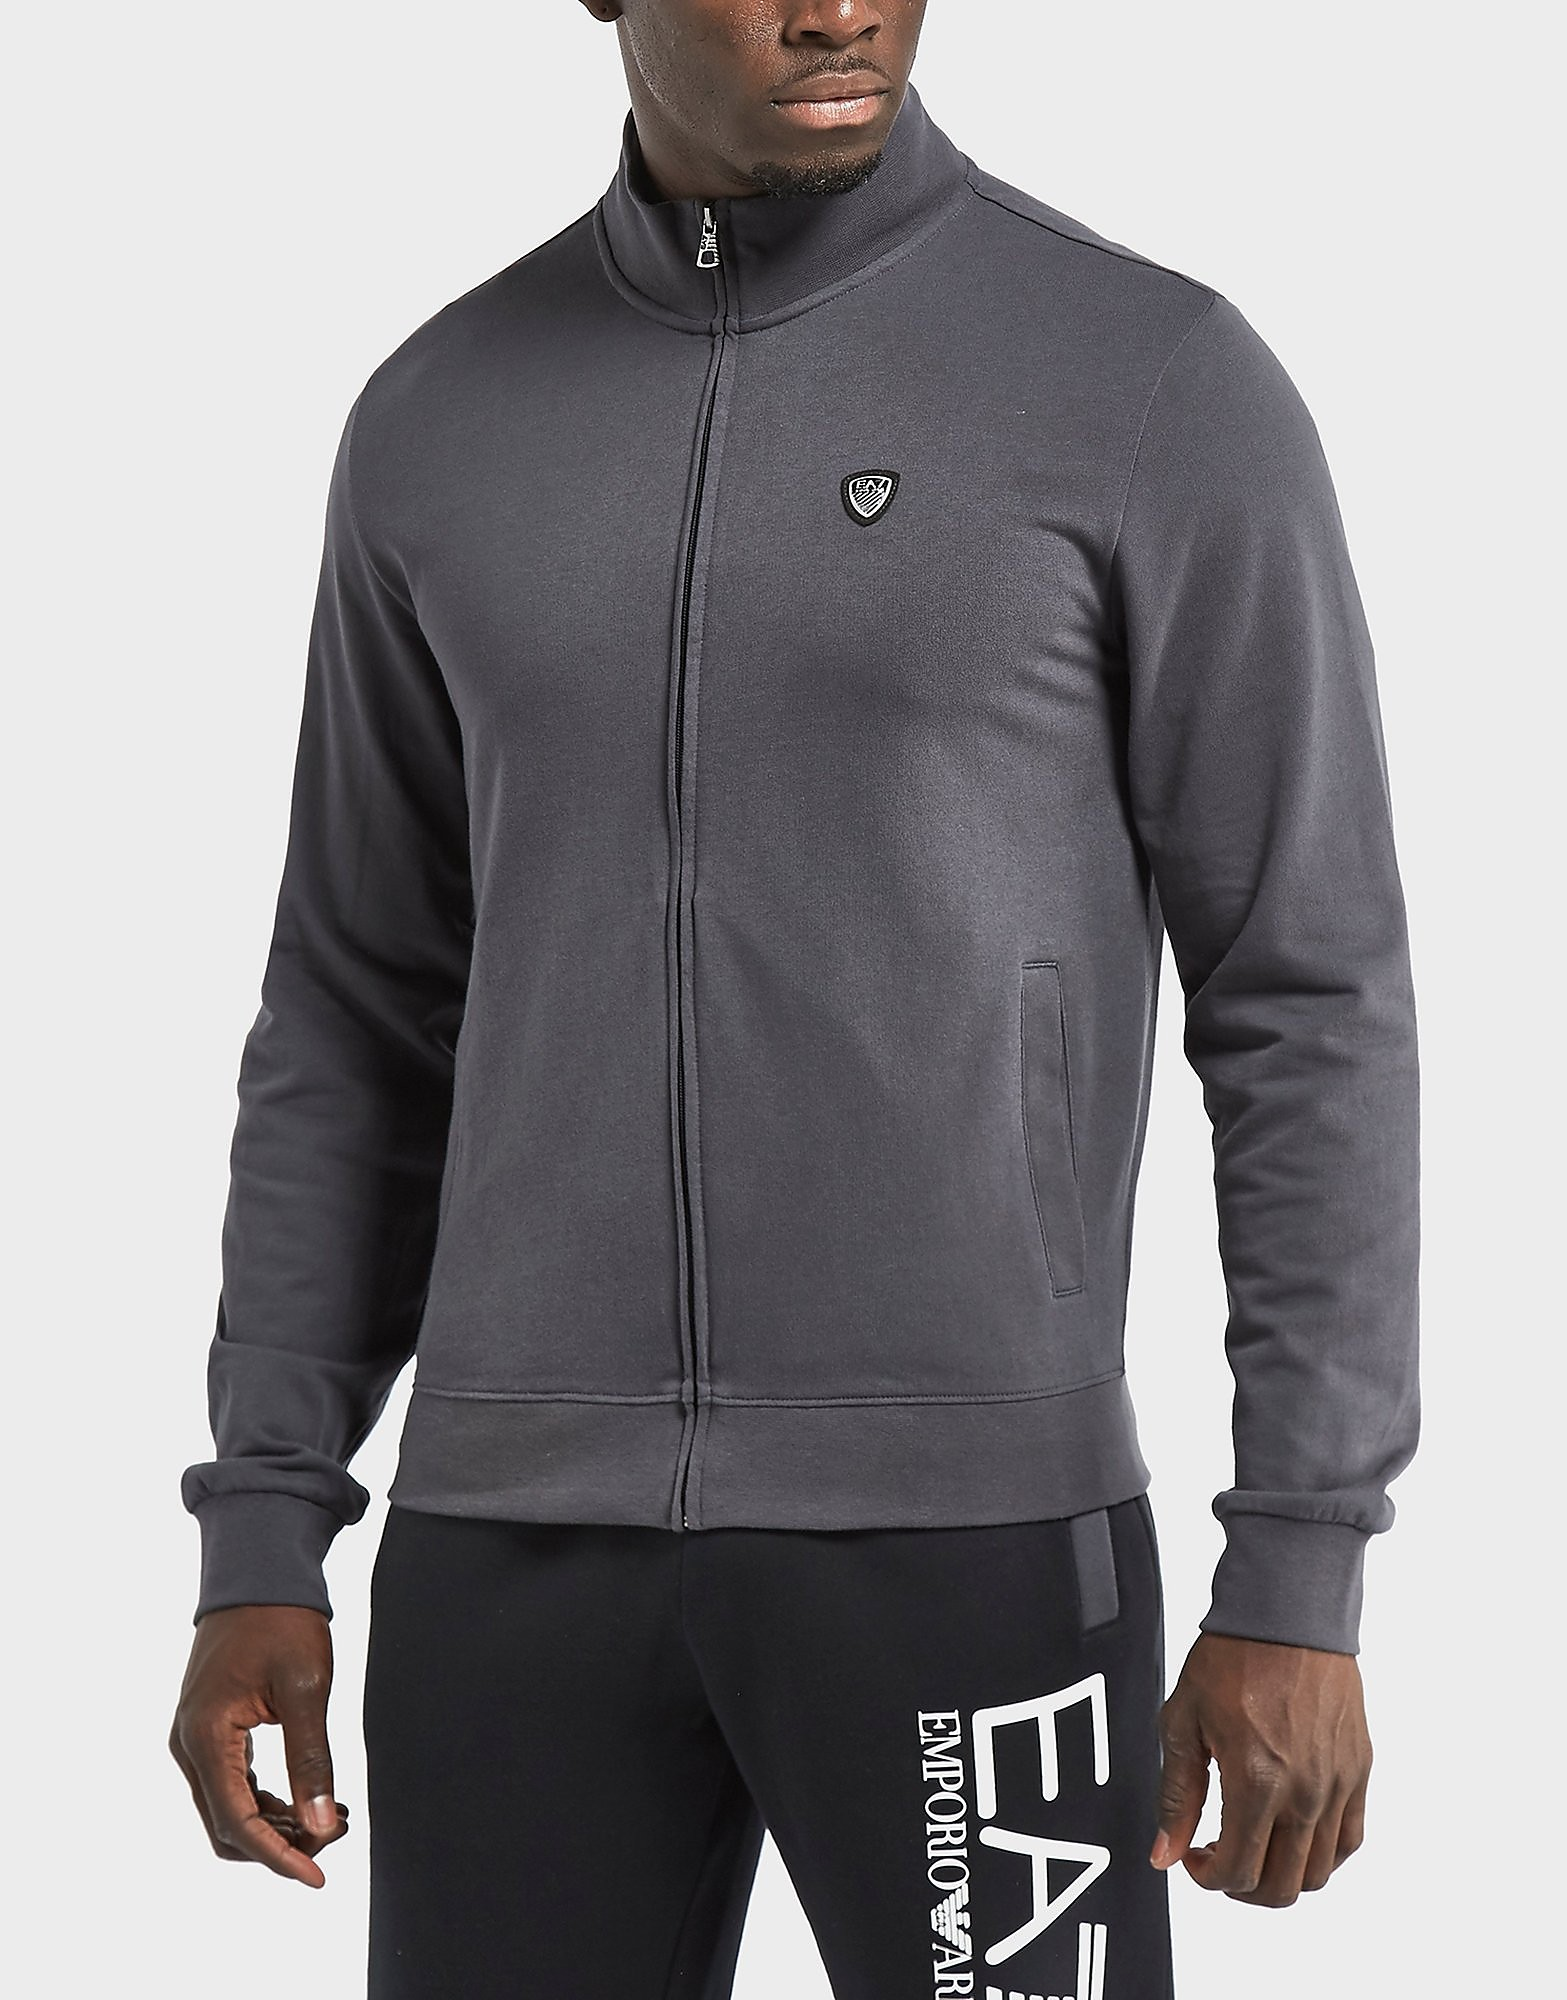 Emporio Armani EA7 Shield Track Top